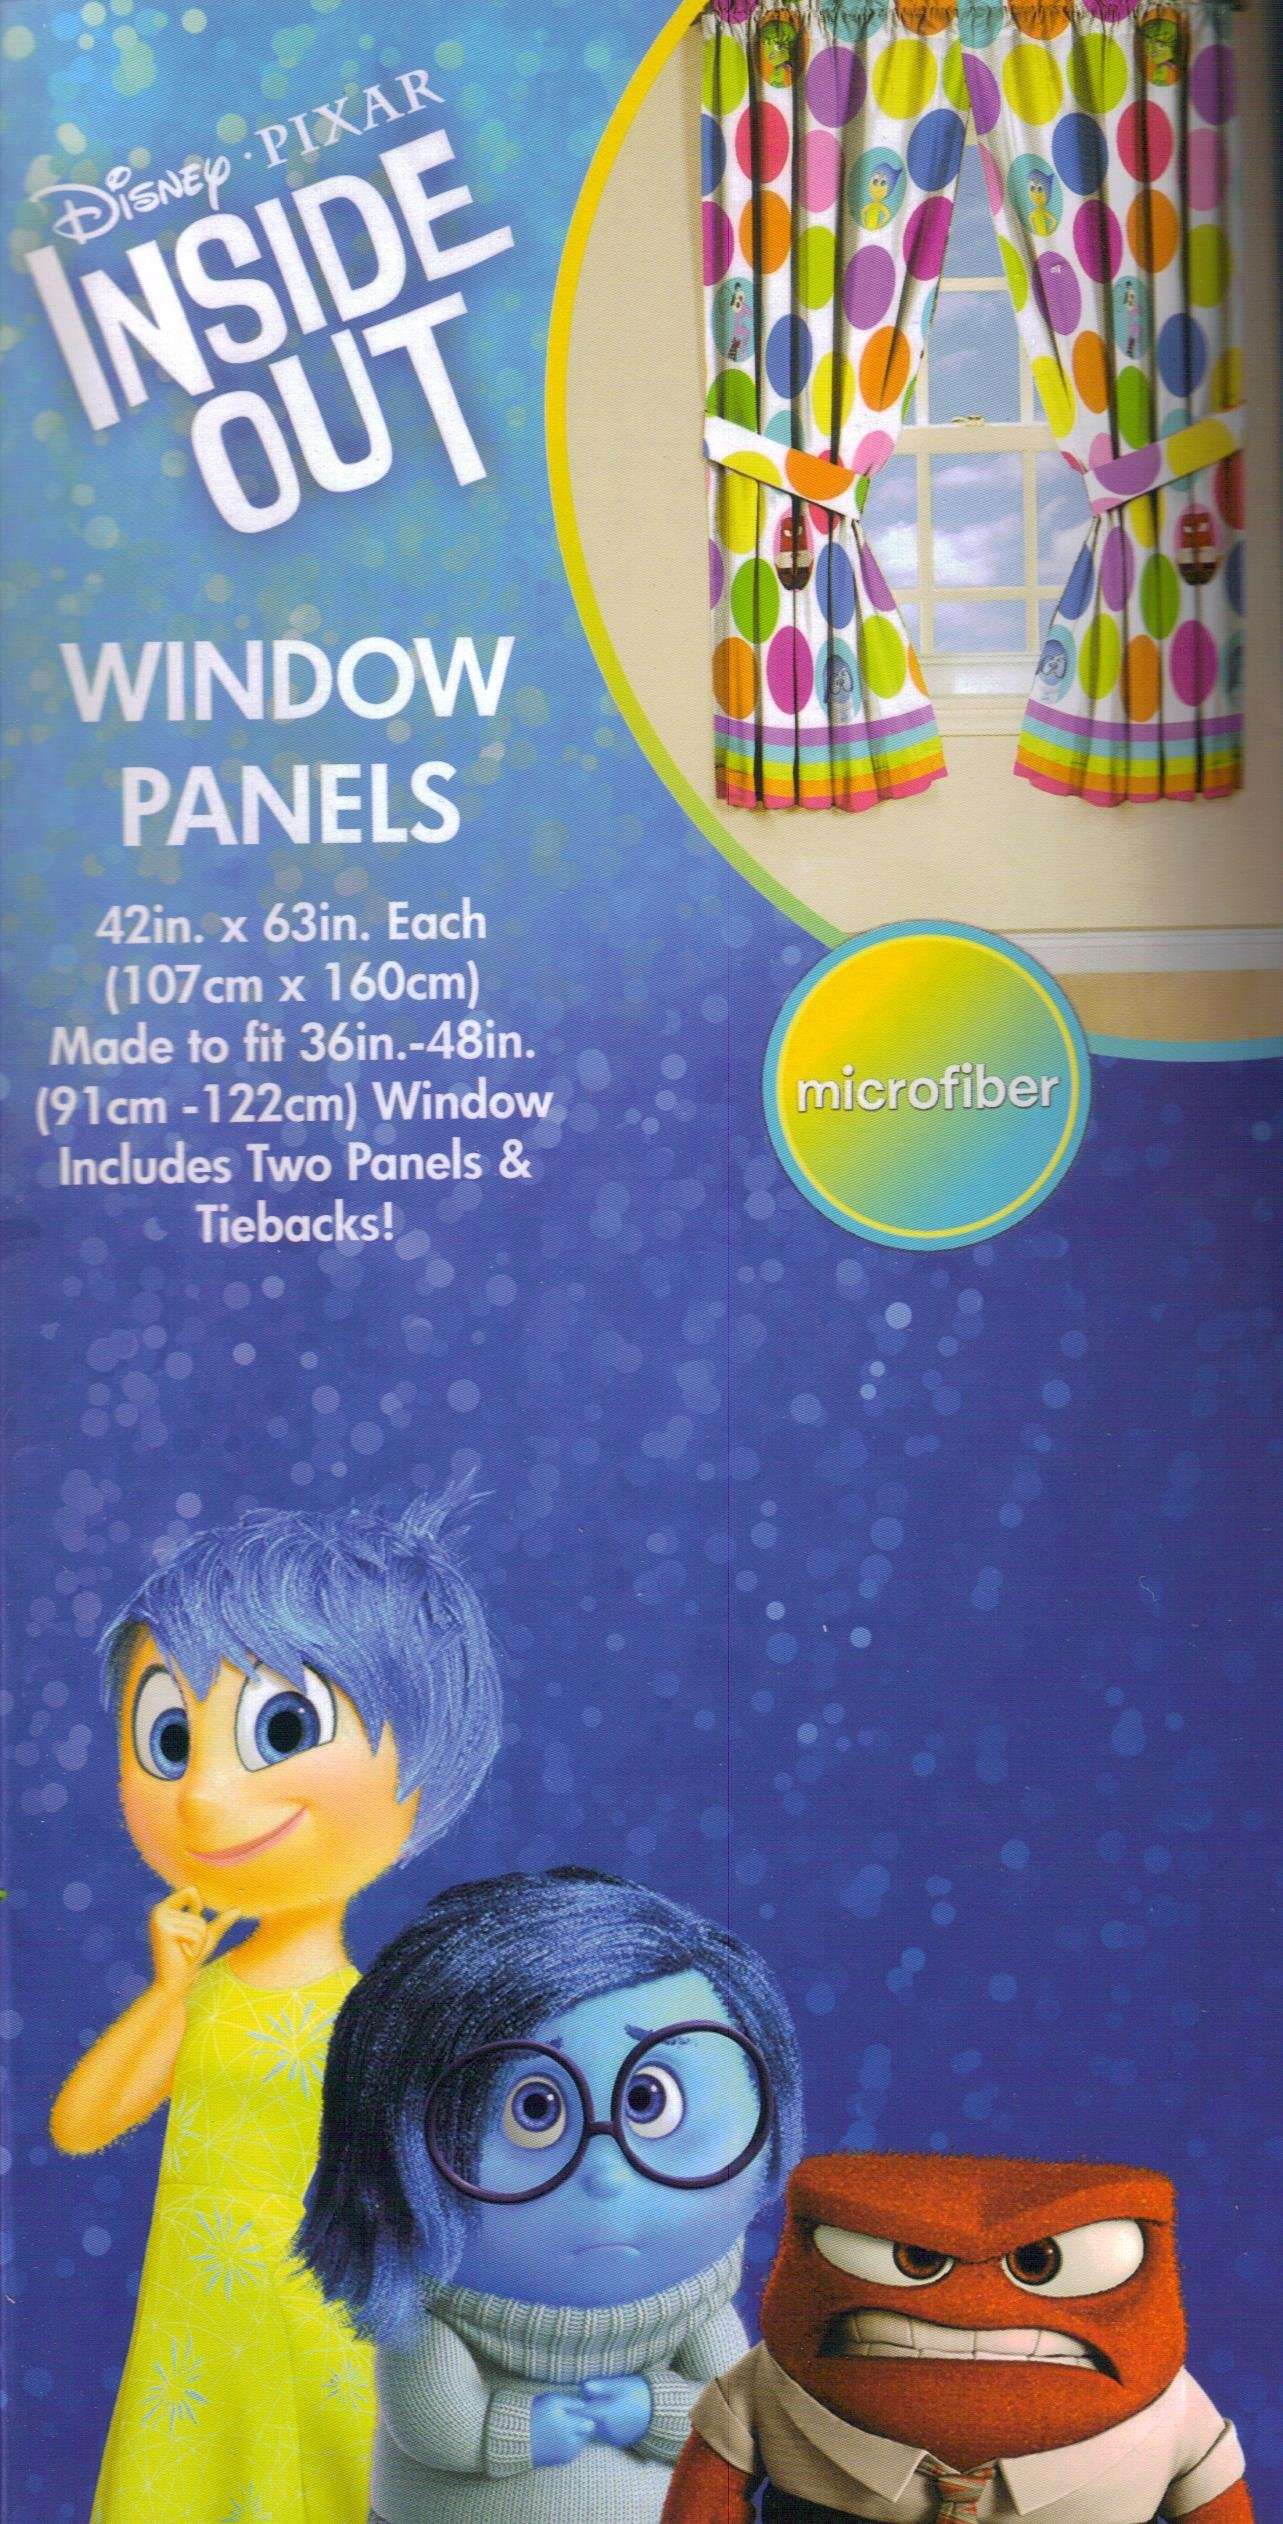 Disney Pixar INSIDE OUT Dots Curtains - Set of 2 Window Panels